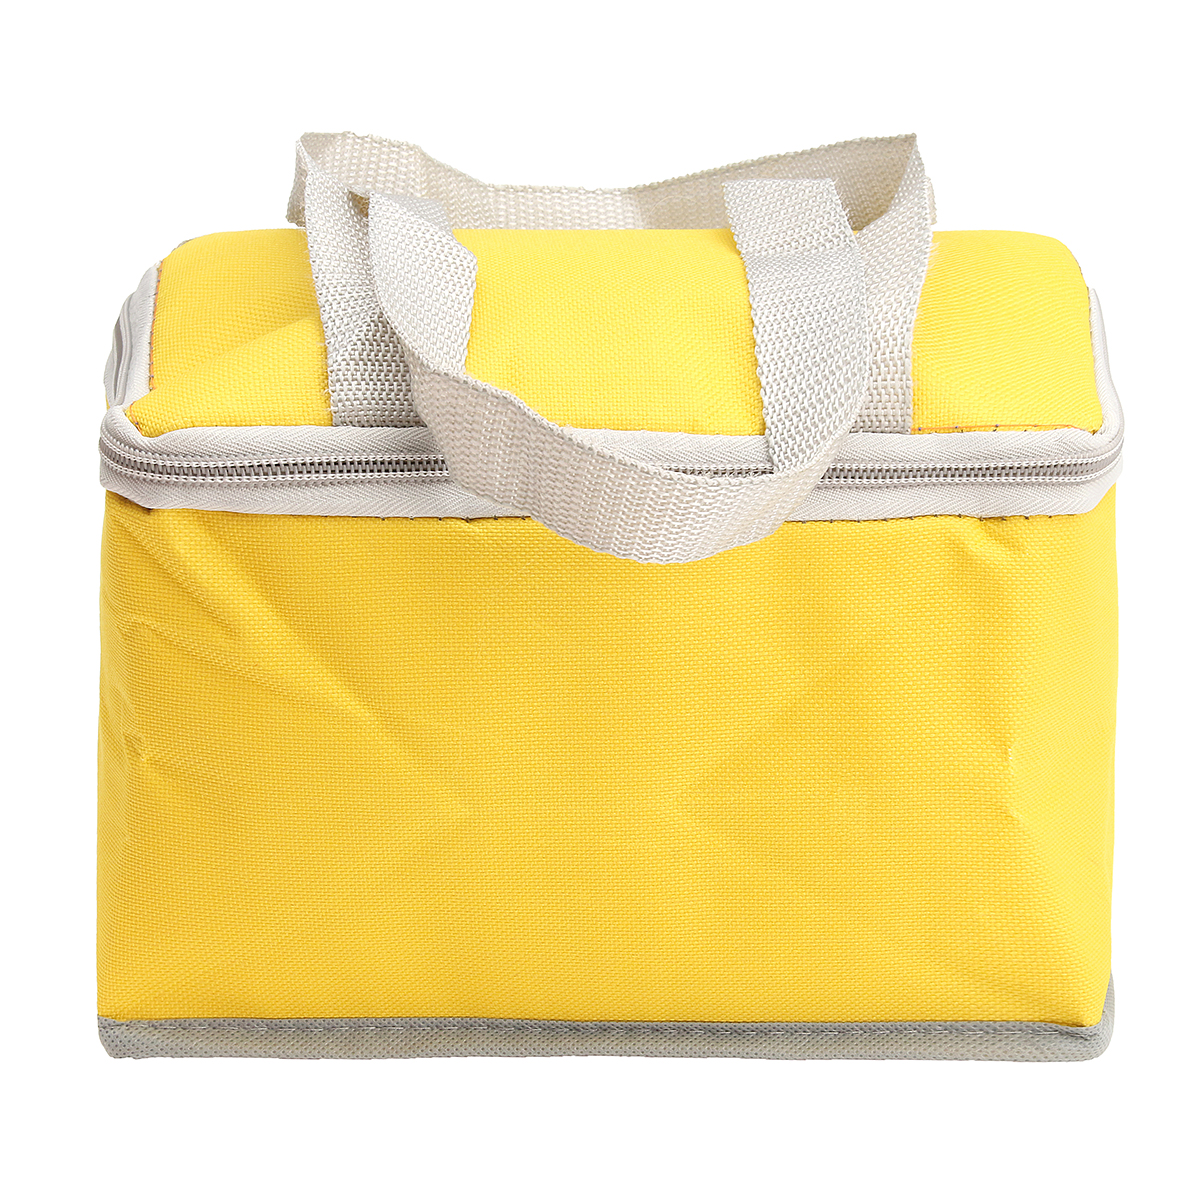 3.8L Oxford Cooler Insulated Picnic Bag for Outdoor Traveling Camping Hiking